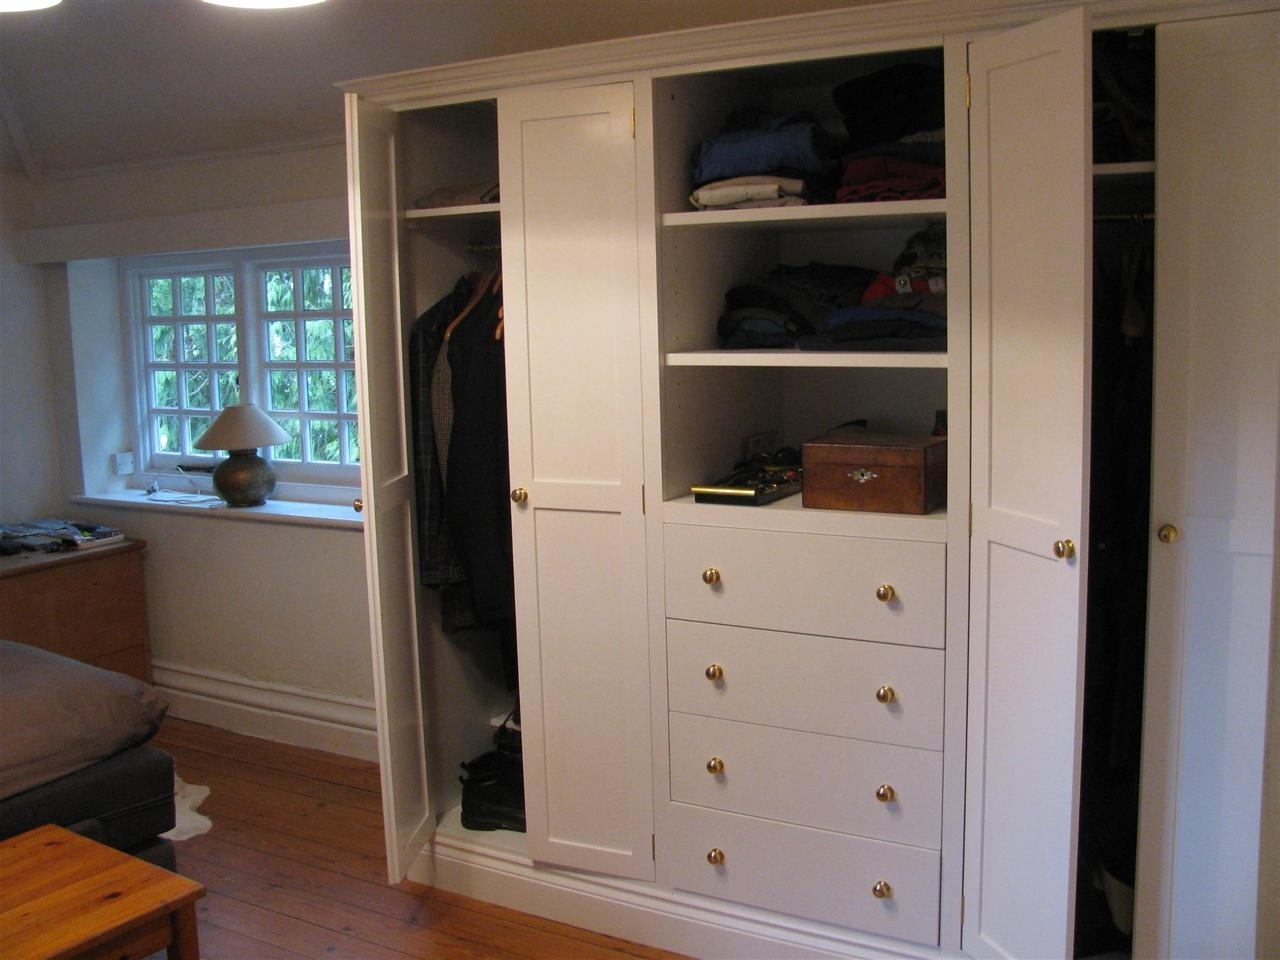 Fashionable Single Wardrobes With Drawers And Shelves With Regard To Wardrobe Cabinet With Shelves Drawers And One Door Single (View 1 of 15)